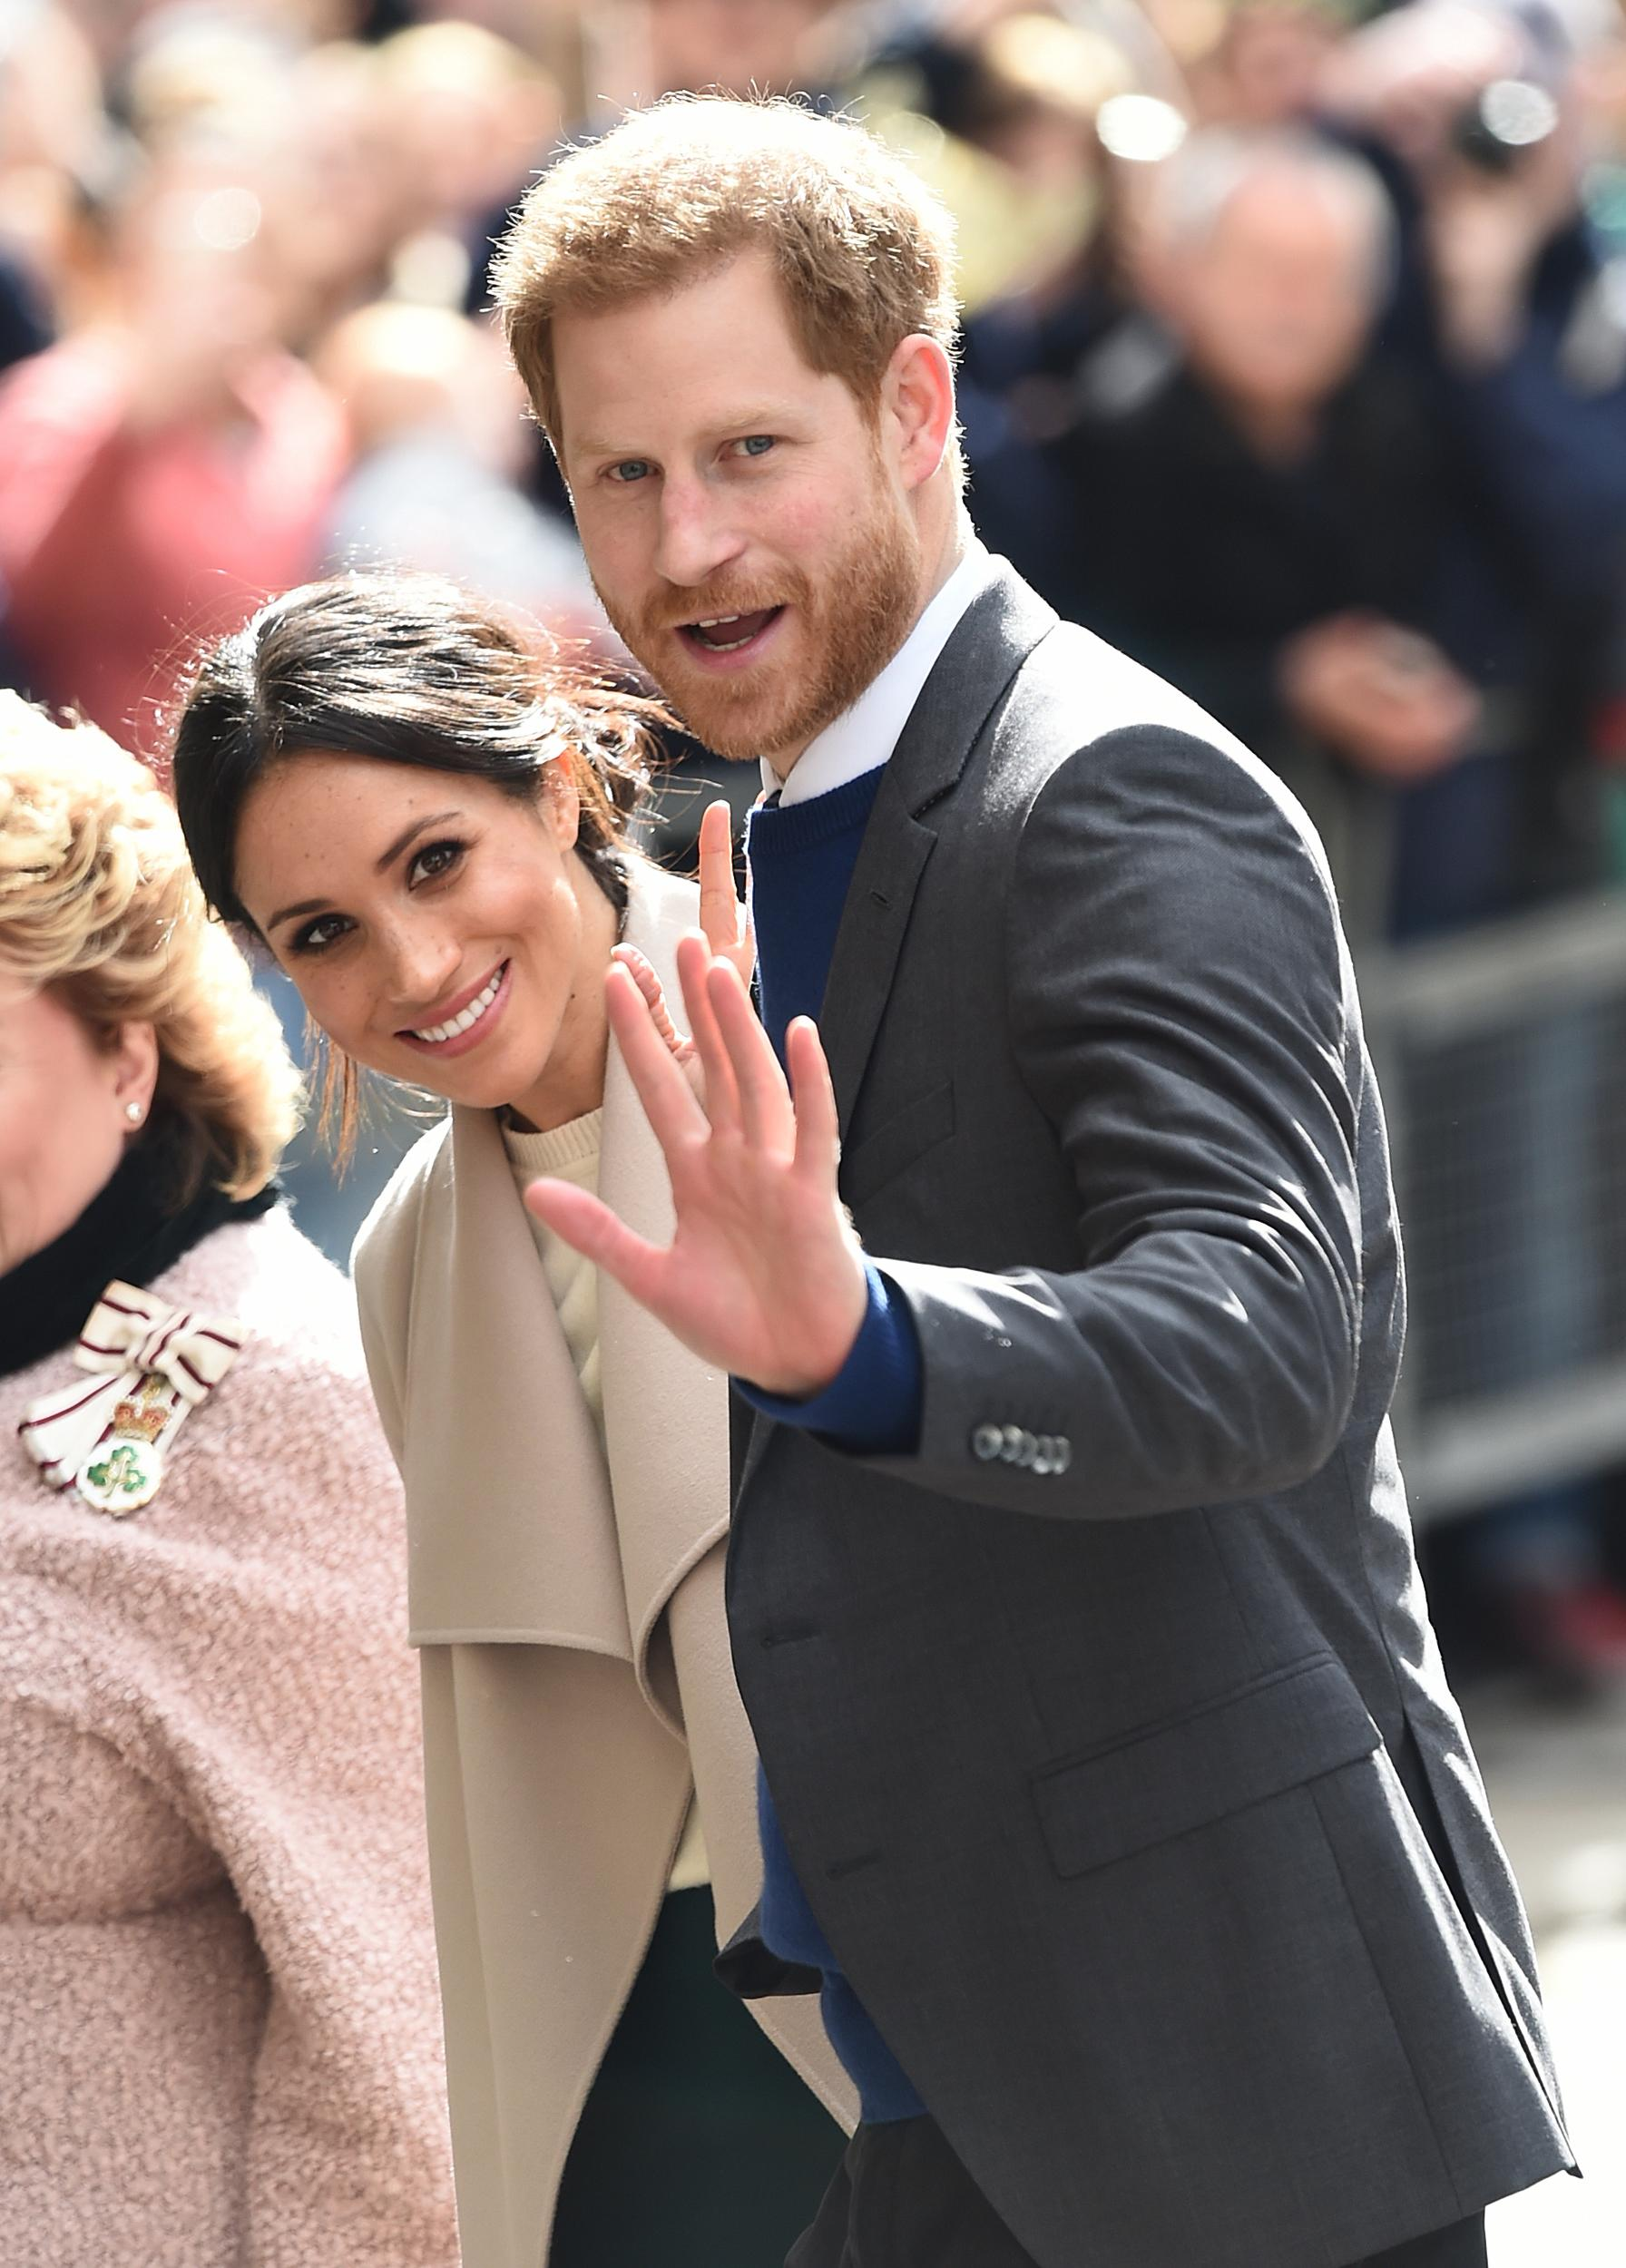 Prince Harry and Meghan Markle arrive for a walkabout in Belfast city centre where they are visiting the Crown Liquor Saloon Bar